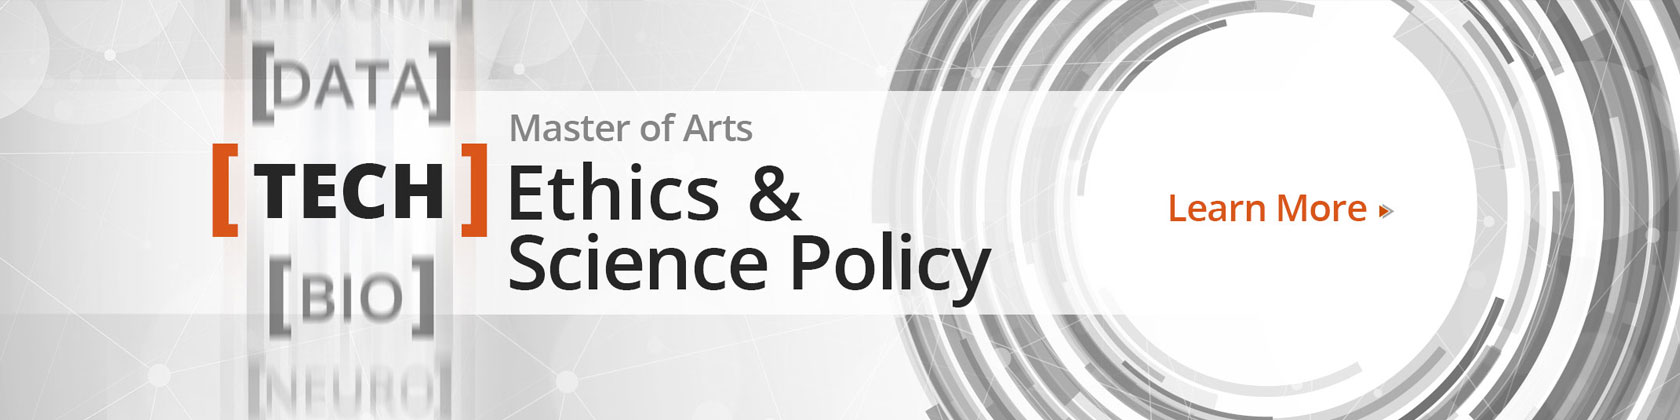 Master of Arts in Tech Ethics & Science Policy, Learn More